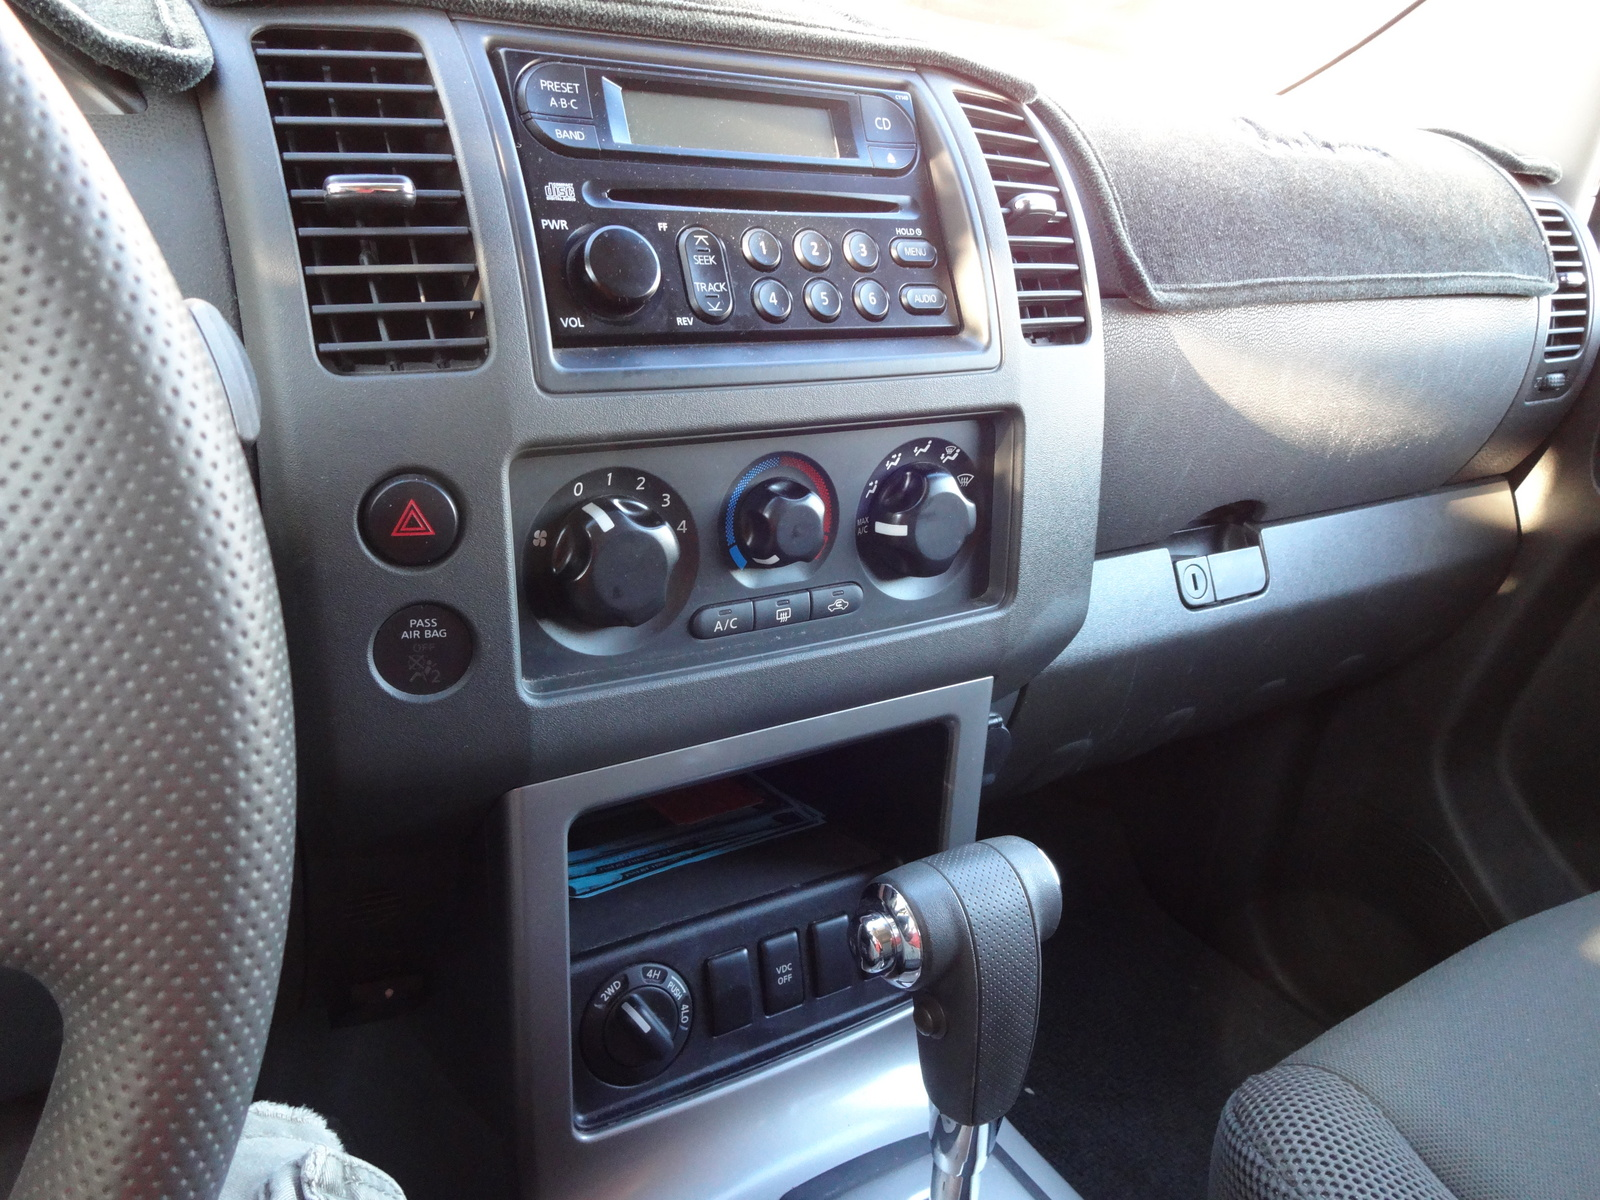 2005 nissan pathfinder xe interior. Black Bedroom Furniture Sets. Home Design Ideas